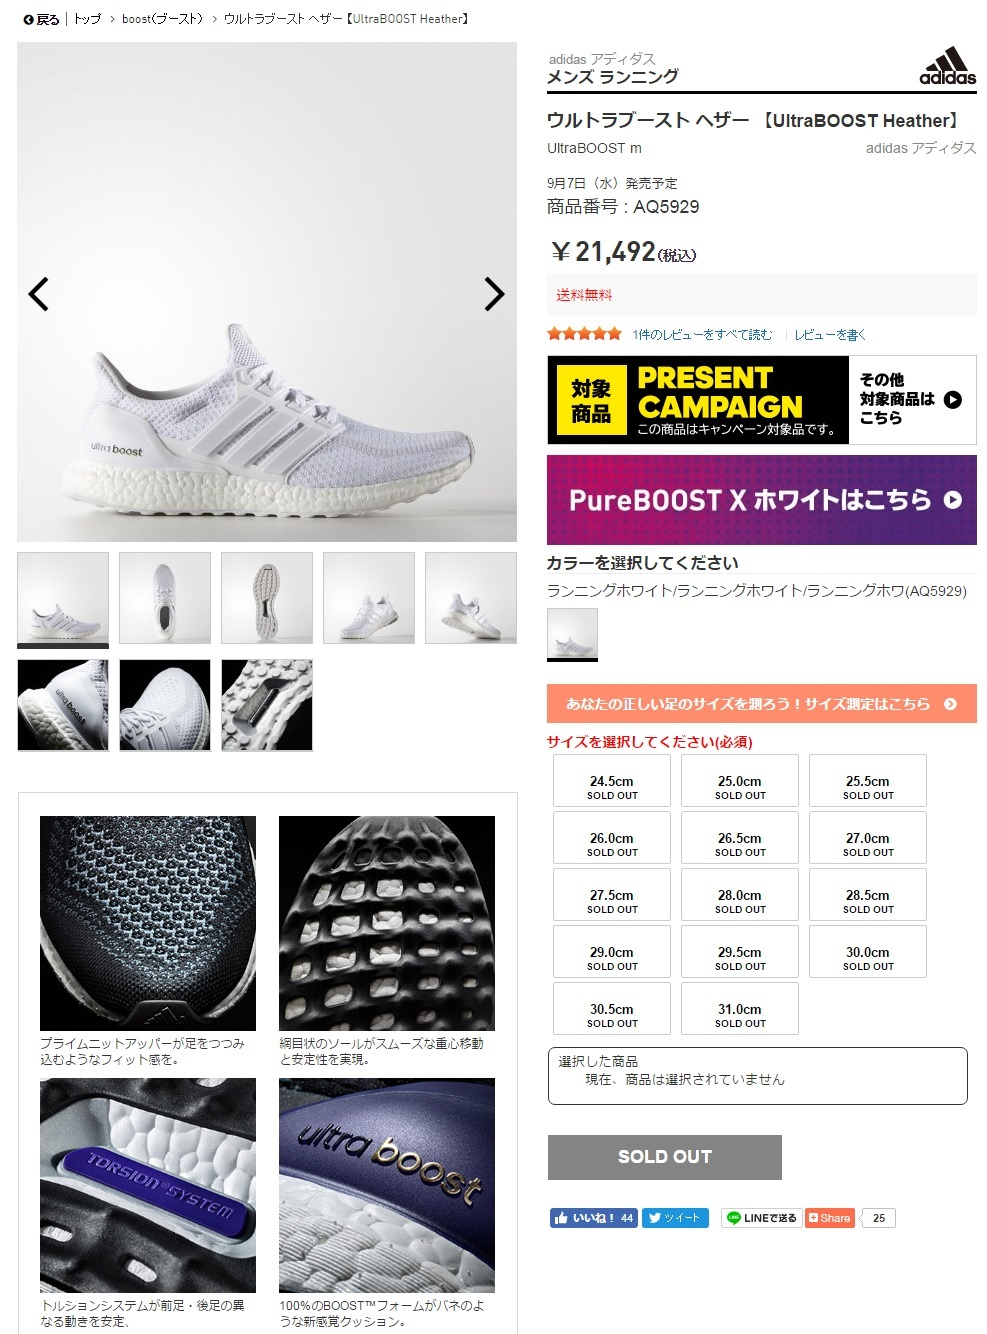 adidas-ultra-boost-triple-white-aq5929-release-20160907